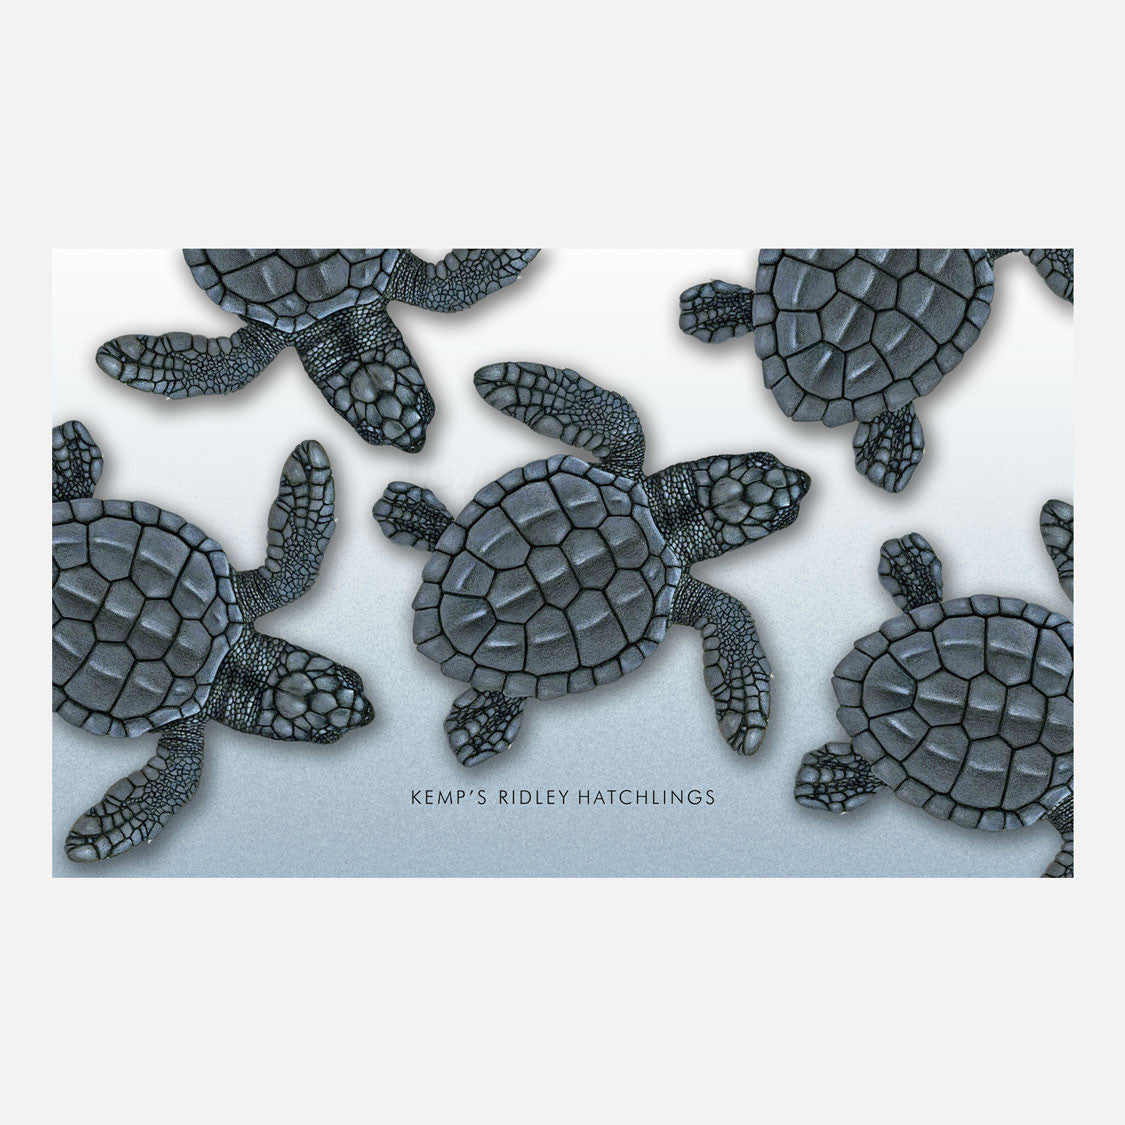 This design is an illustration of Kemp's ridley sea turtle hatchlings, Lepidochelys kempii.